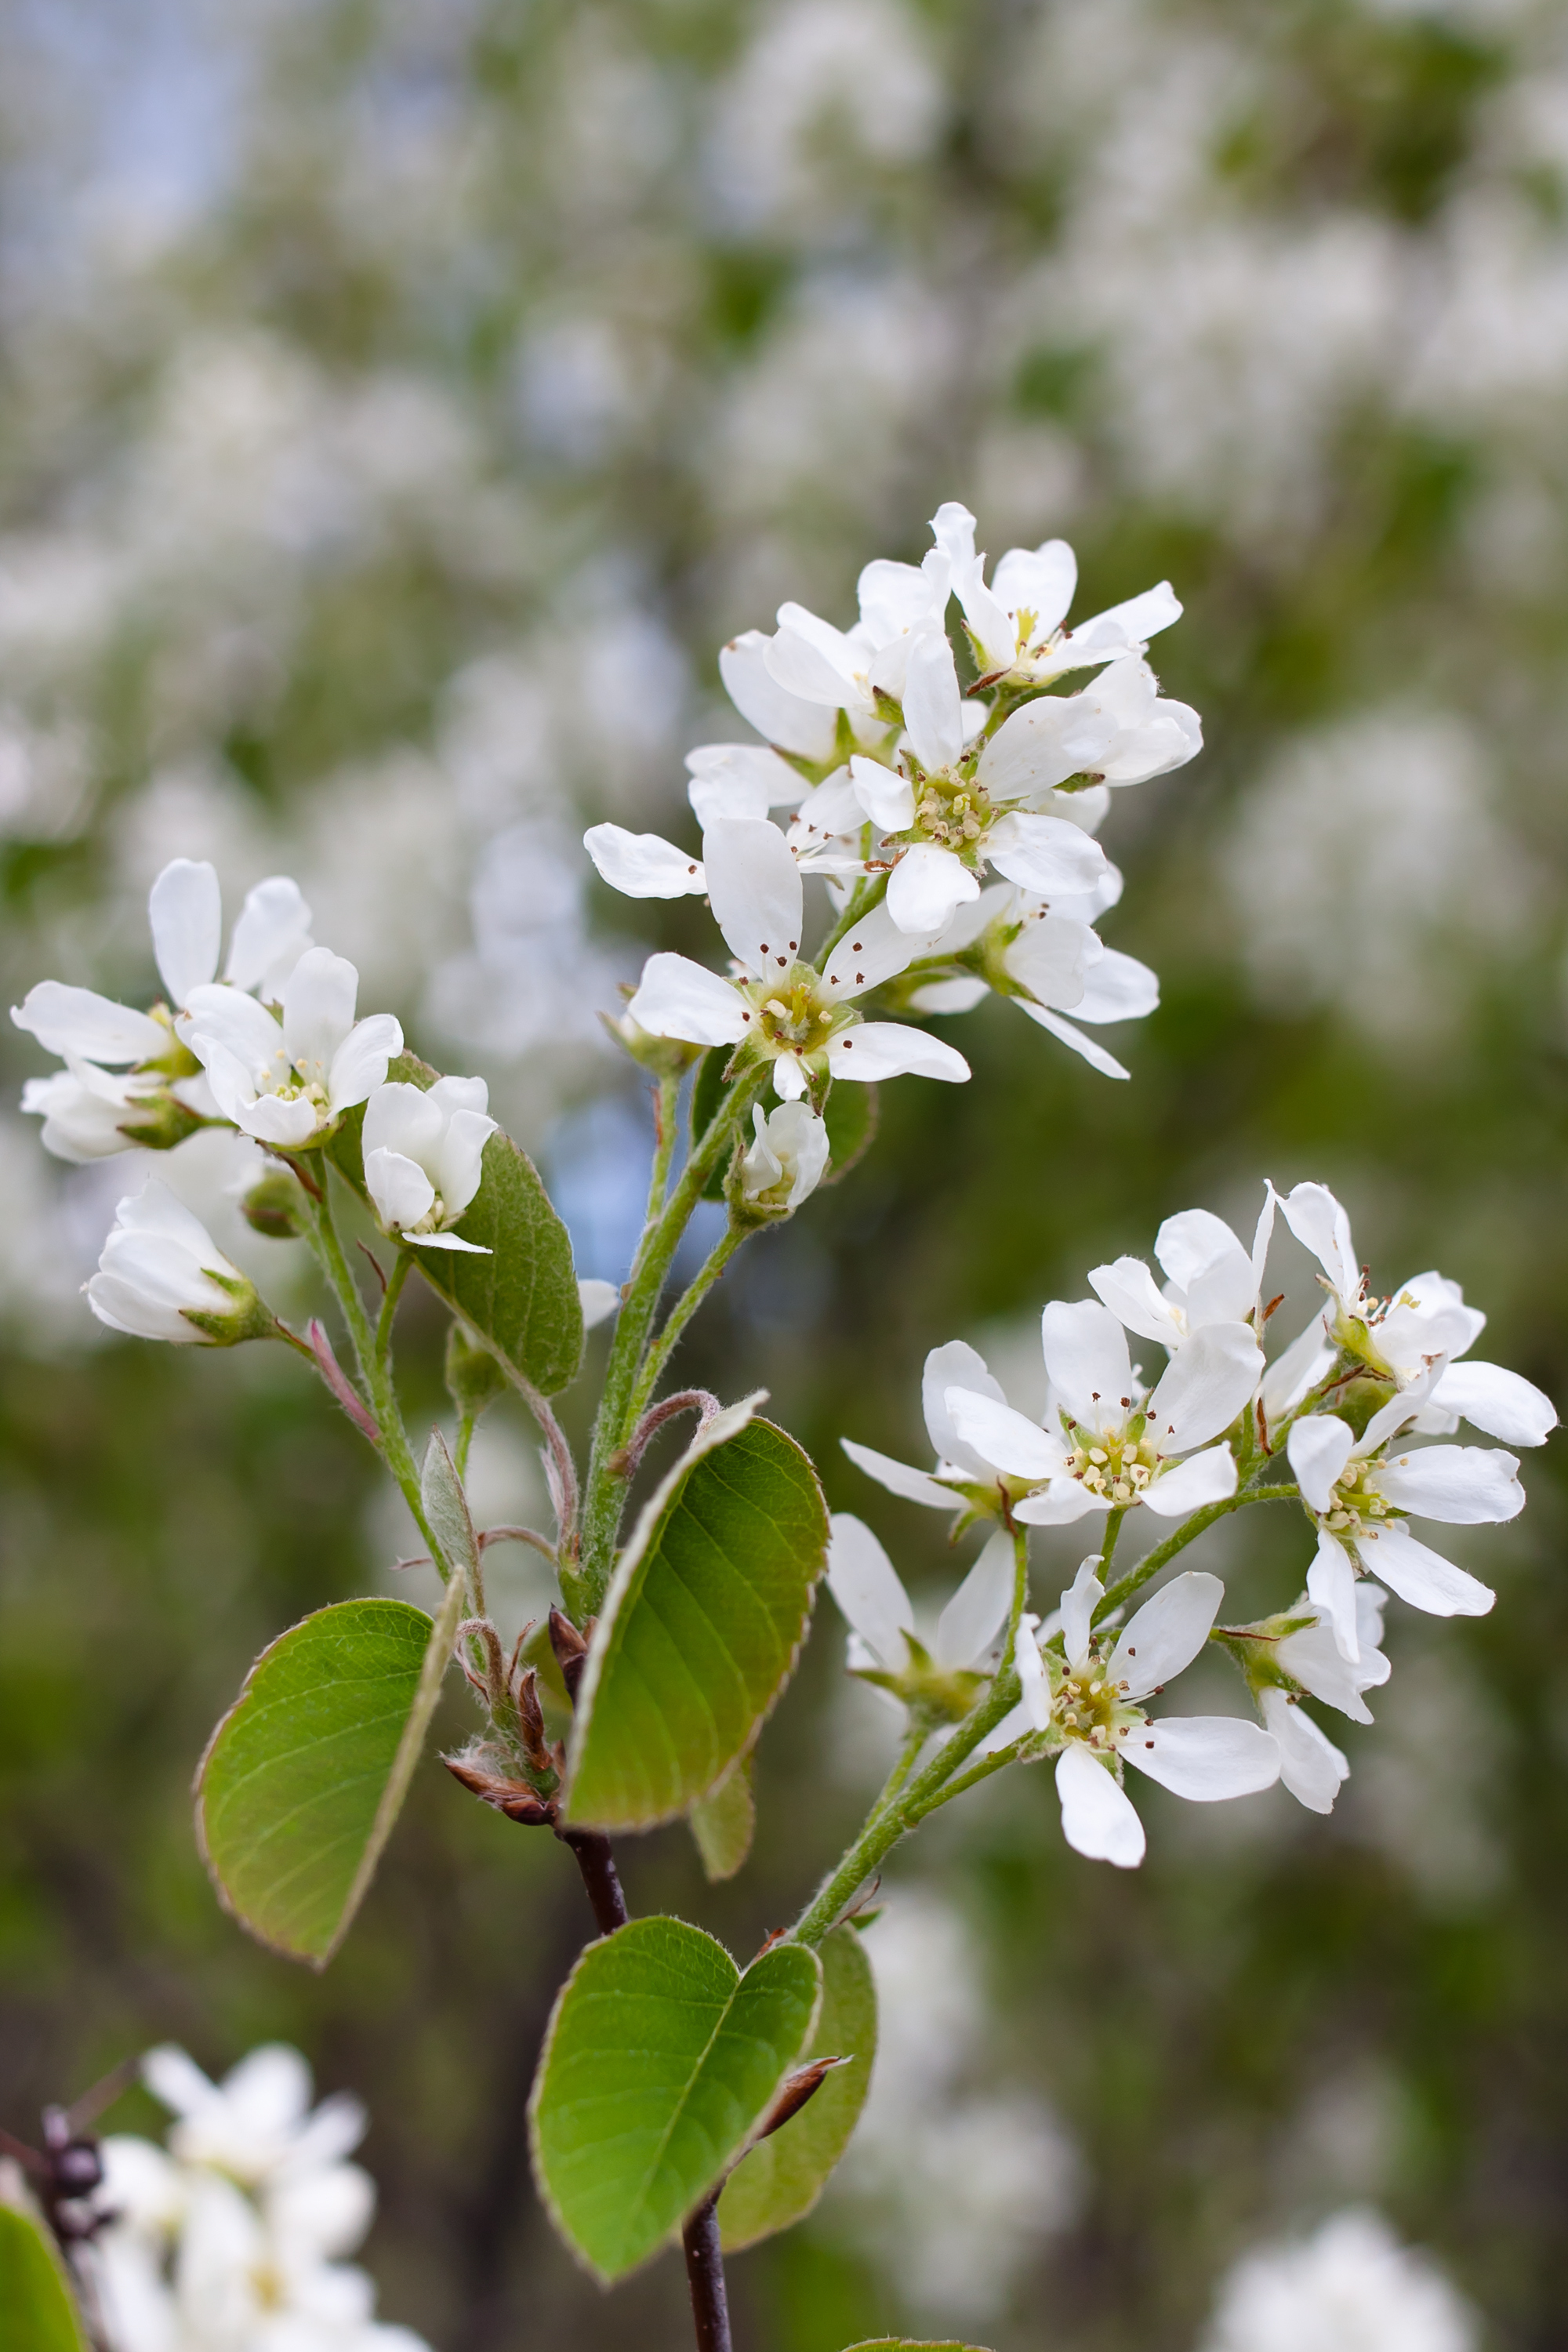 Amalanchiers bear clouds of white flowers (Thinkstock/PA)